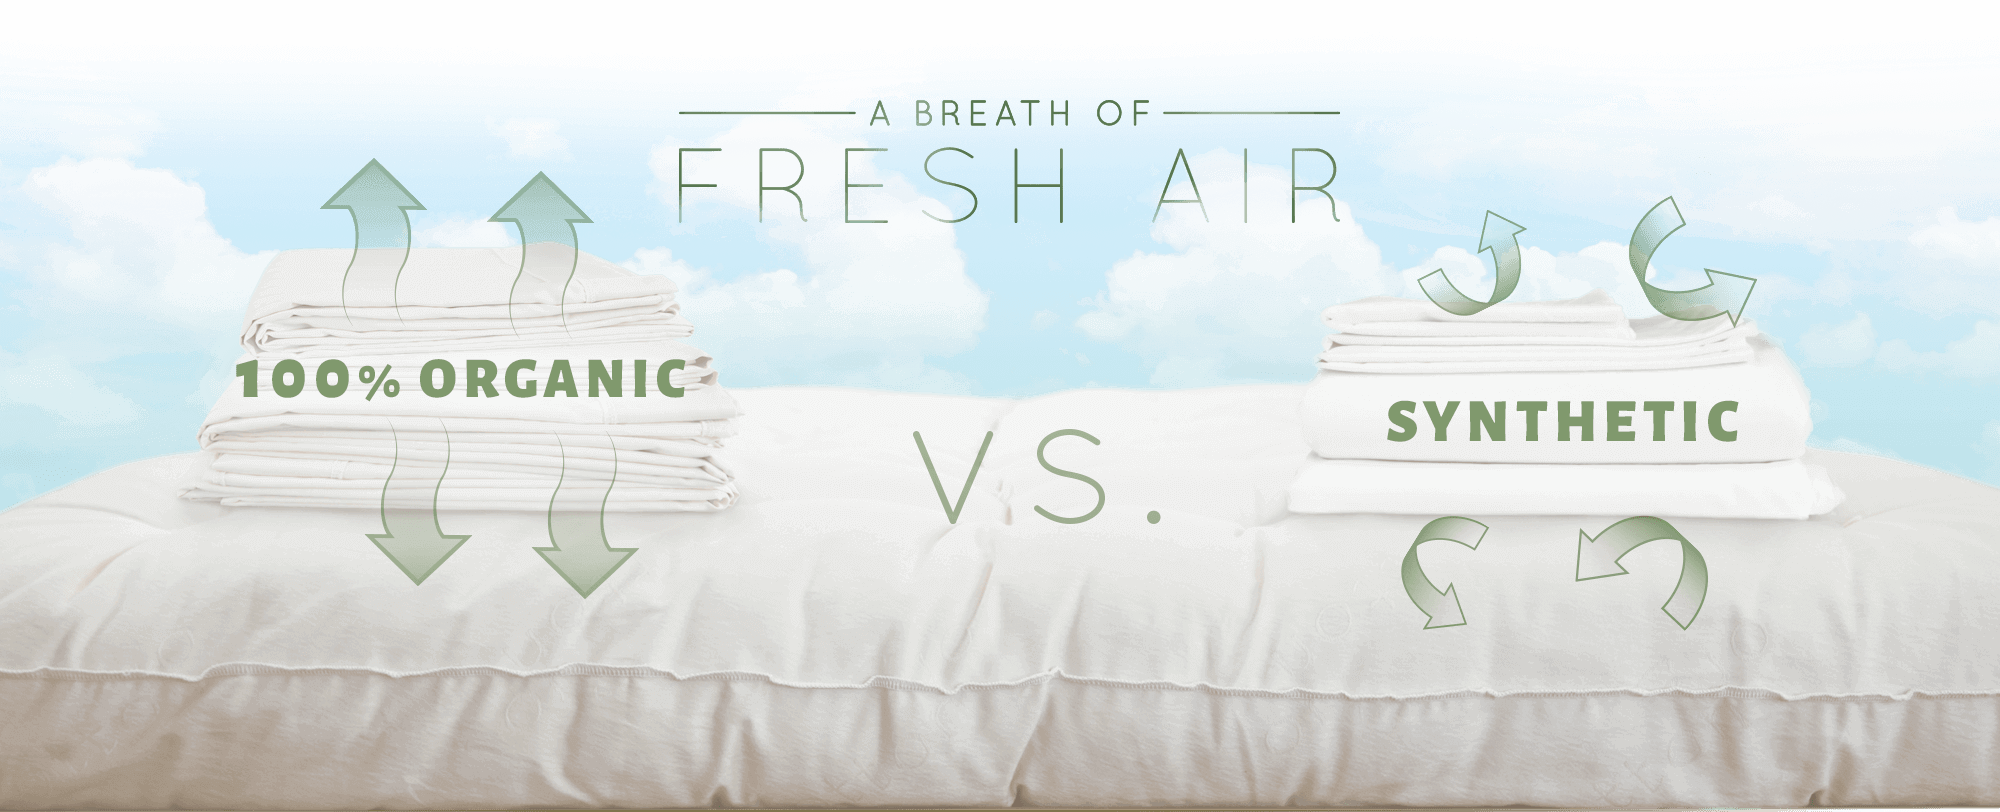 A breath of fresh air - 100% Organic VS Synthetic